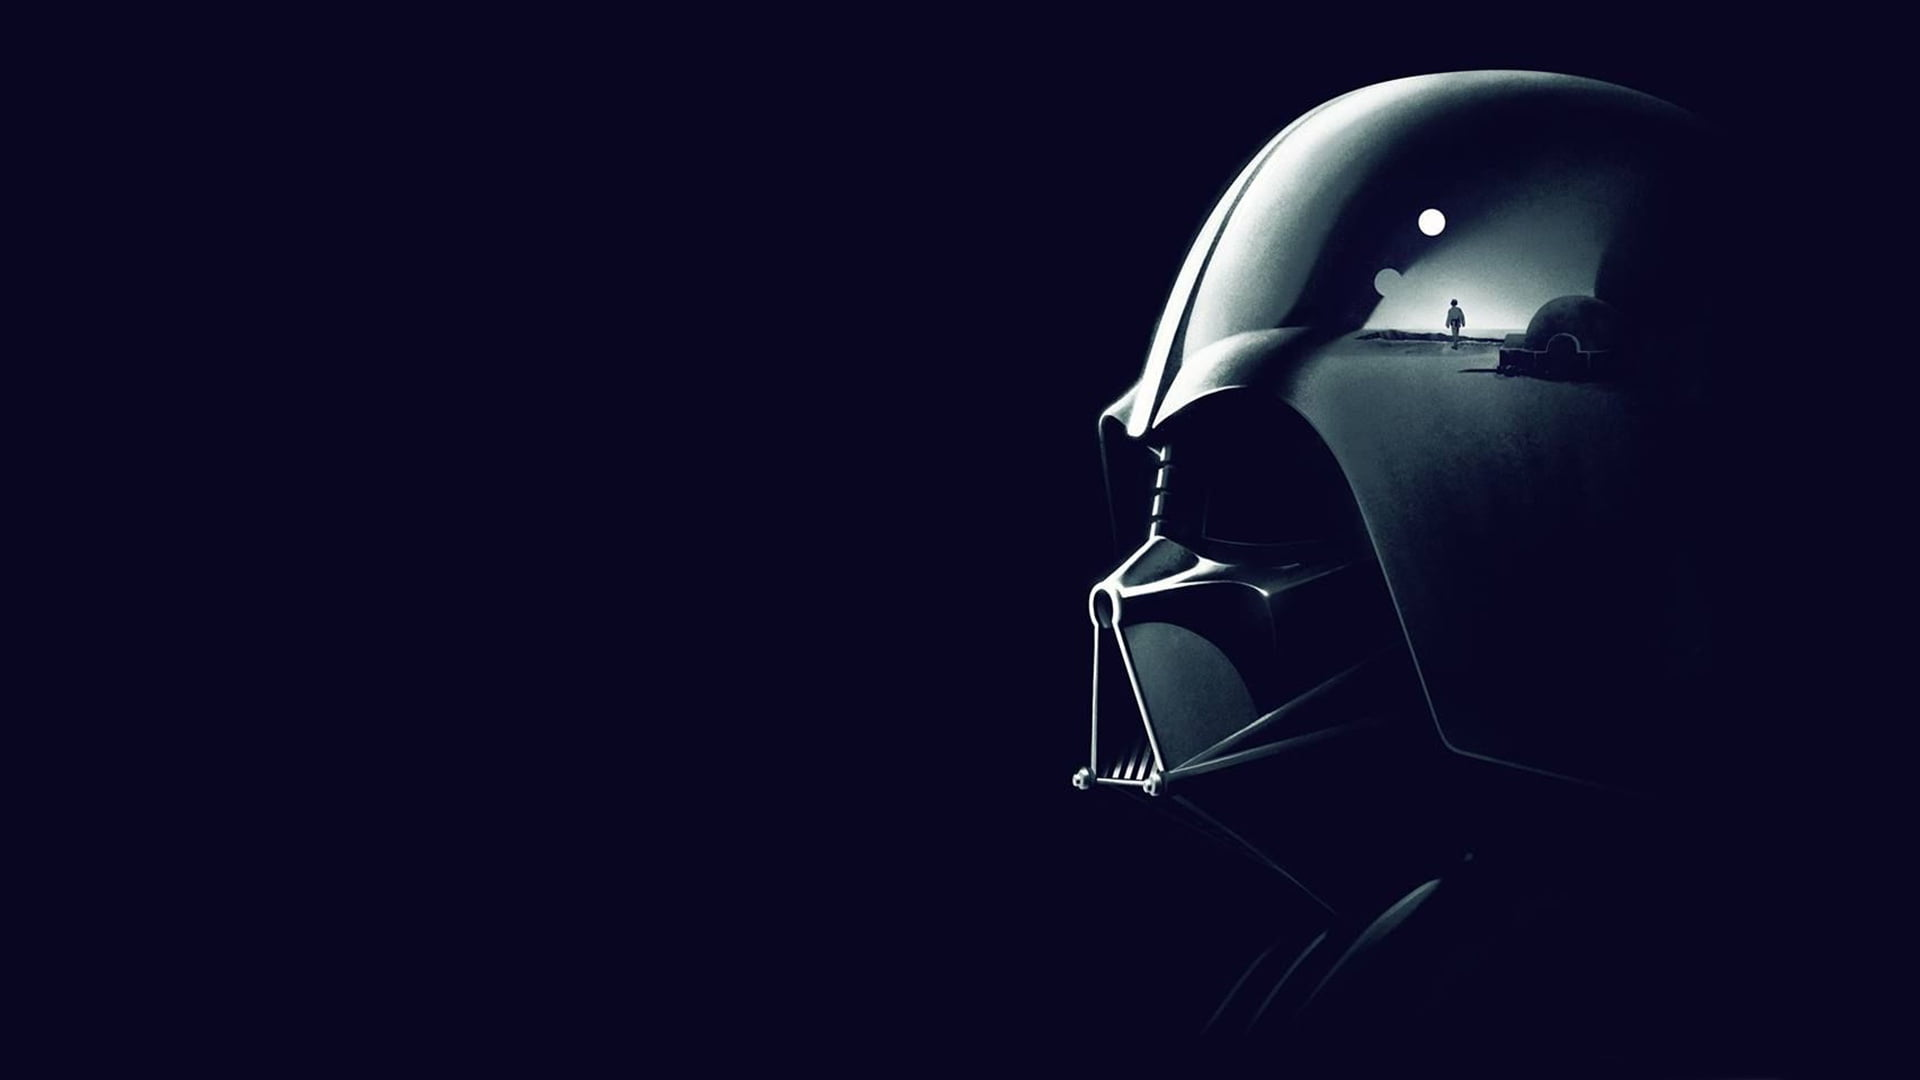 darth vader hd wallpapers